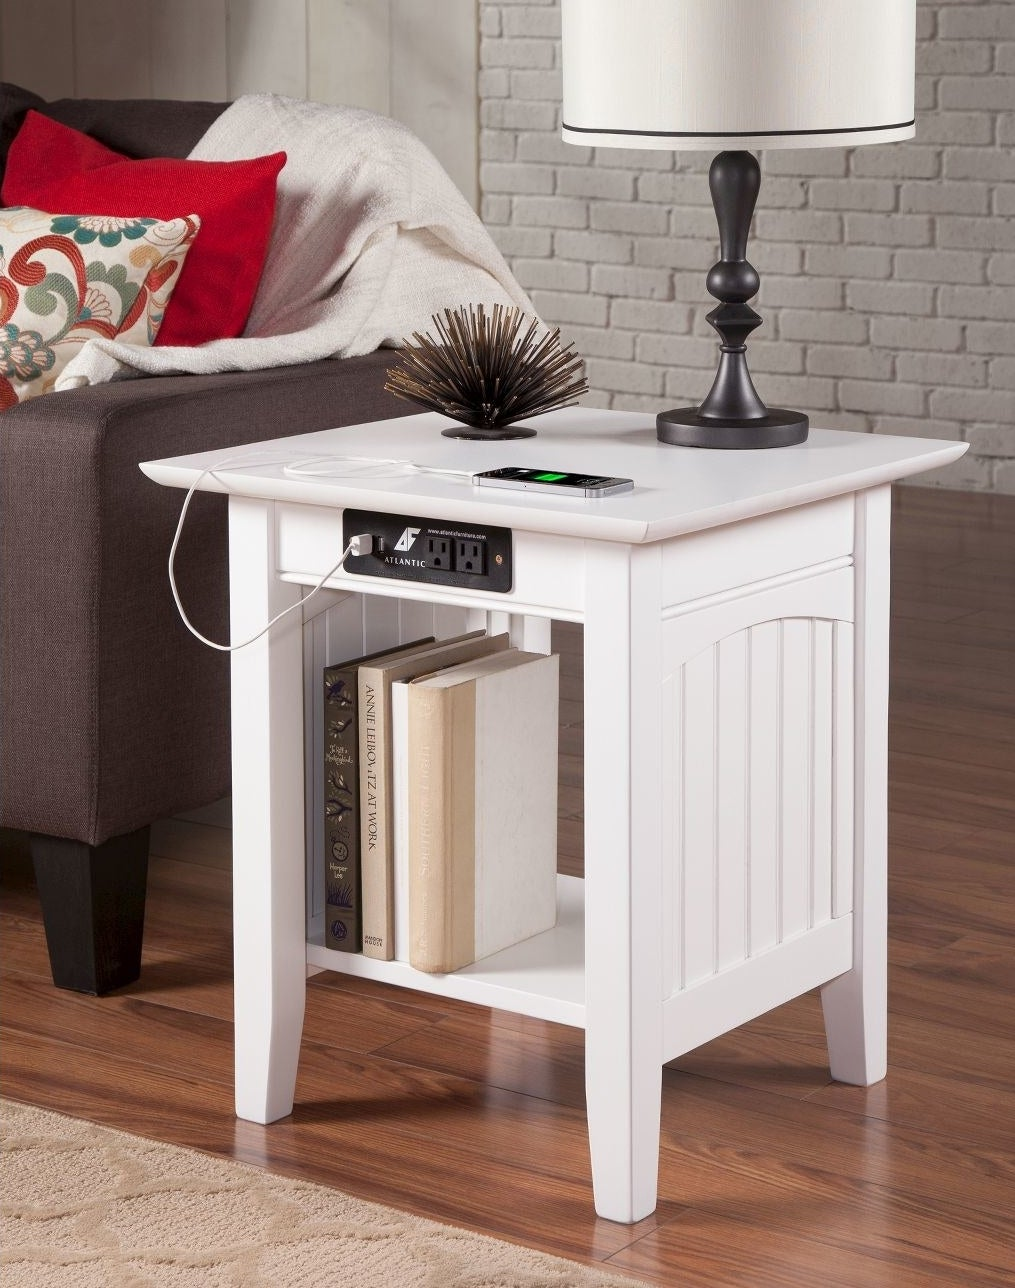 The table in white, which has one large shelf area, and USB and traditional outlets under the rim of the tabletop